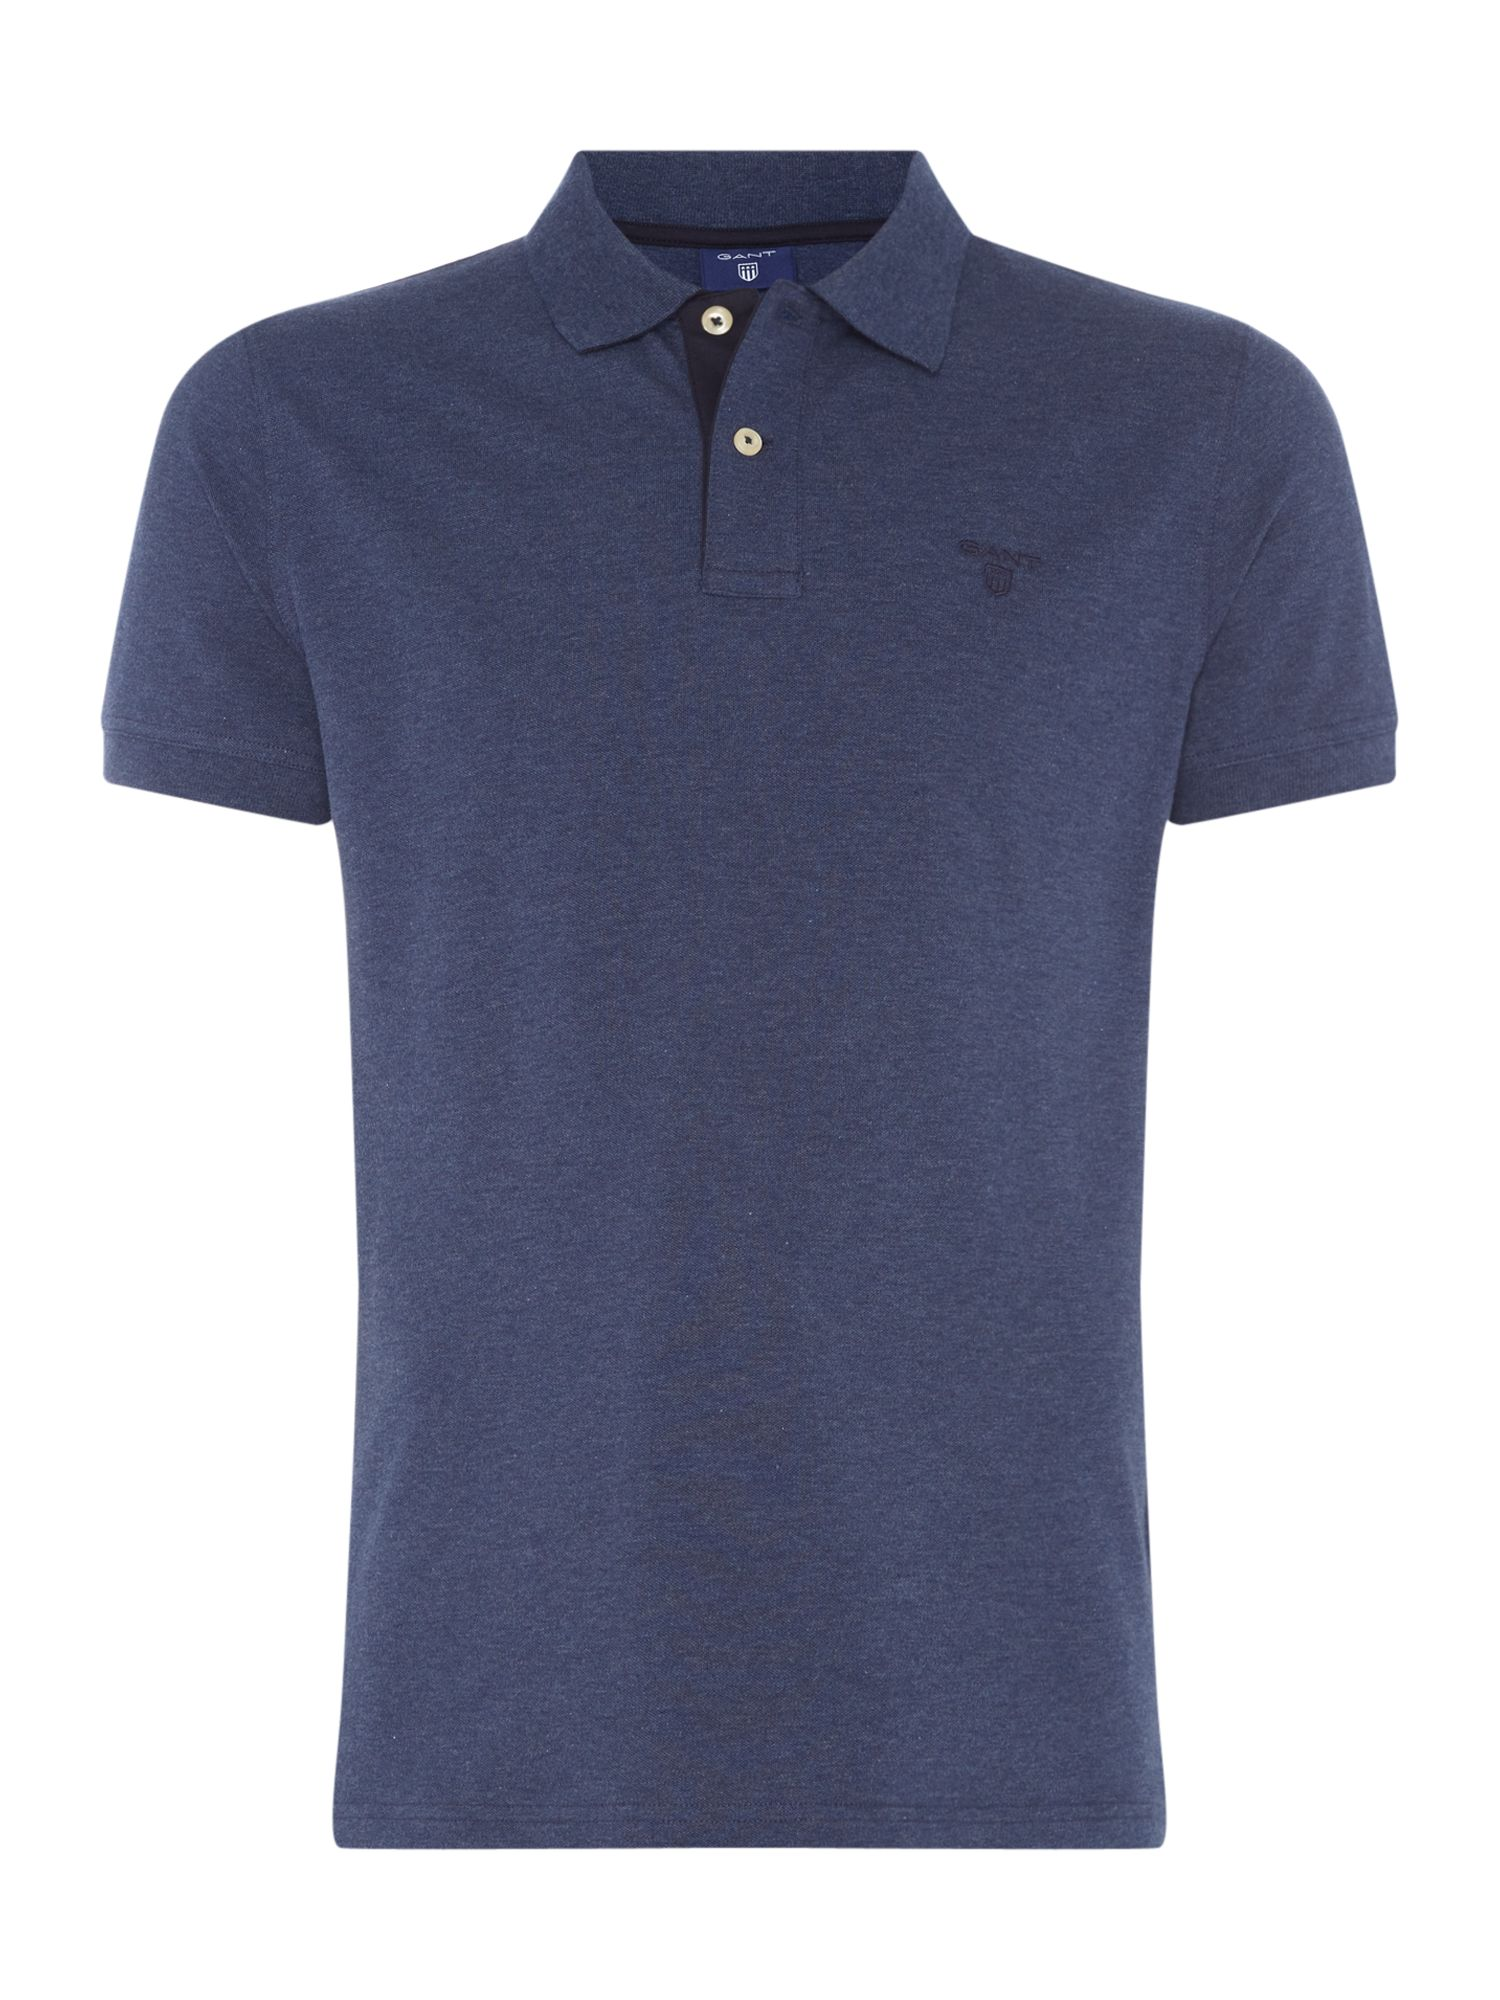 Men's Gant Contrast Collar Polo Shirt, Indigo Marl